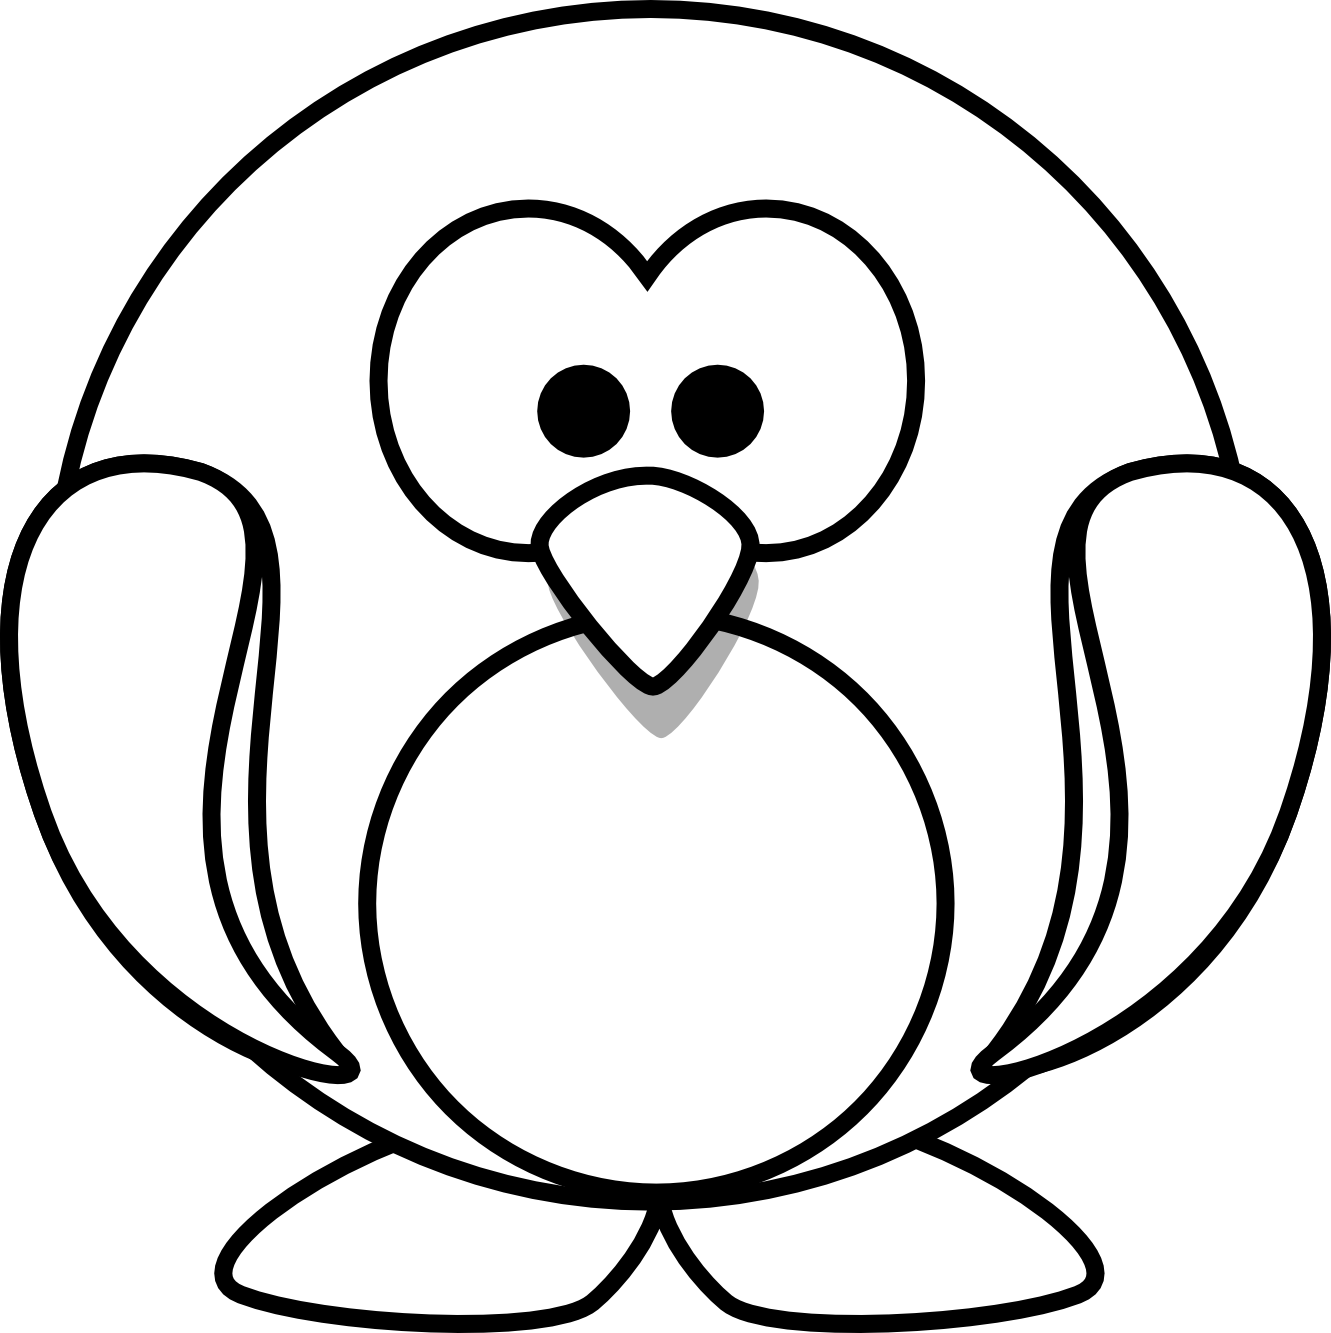 Christmas Coloring Pages Penguins With Penguin Drawing At GetDrawings Com Free For Personal Use